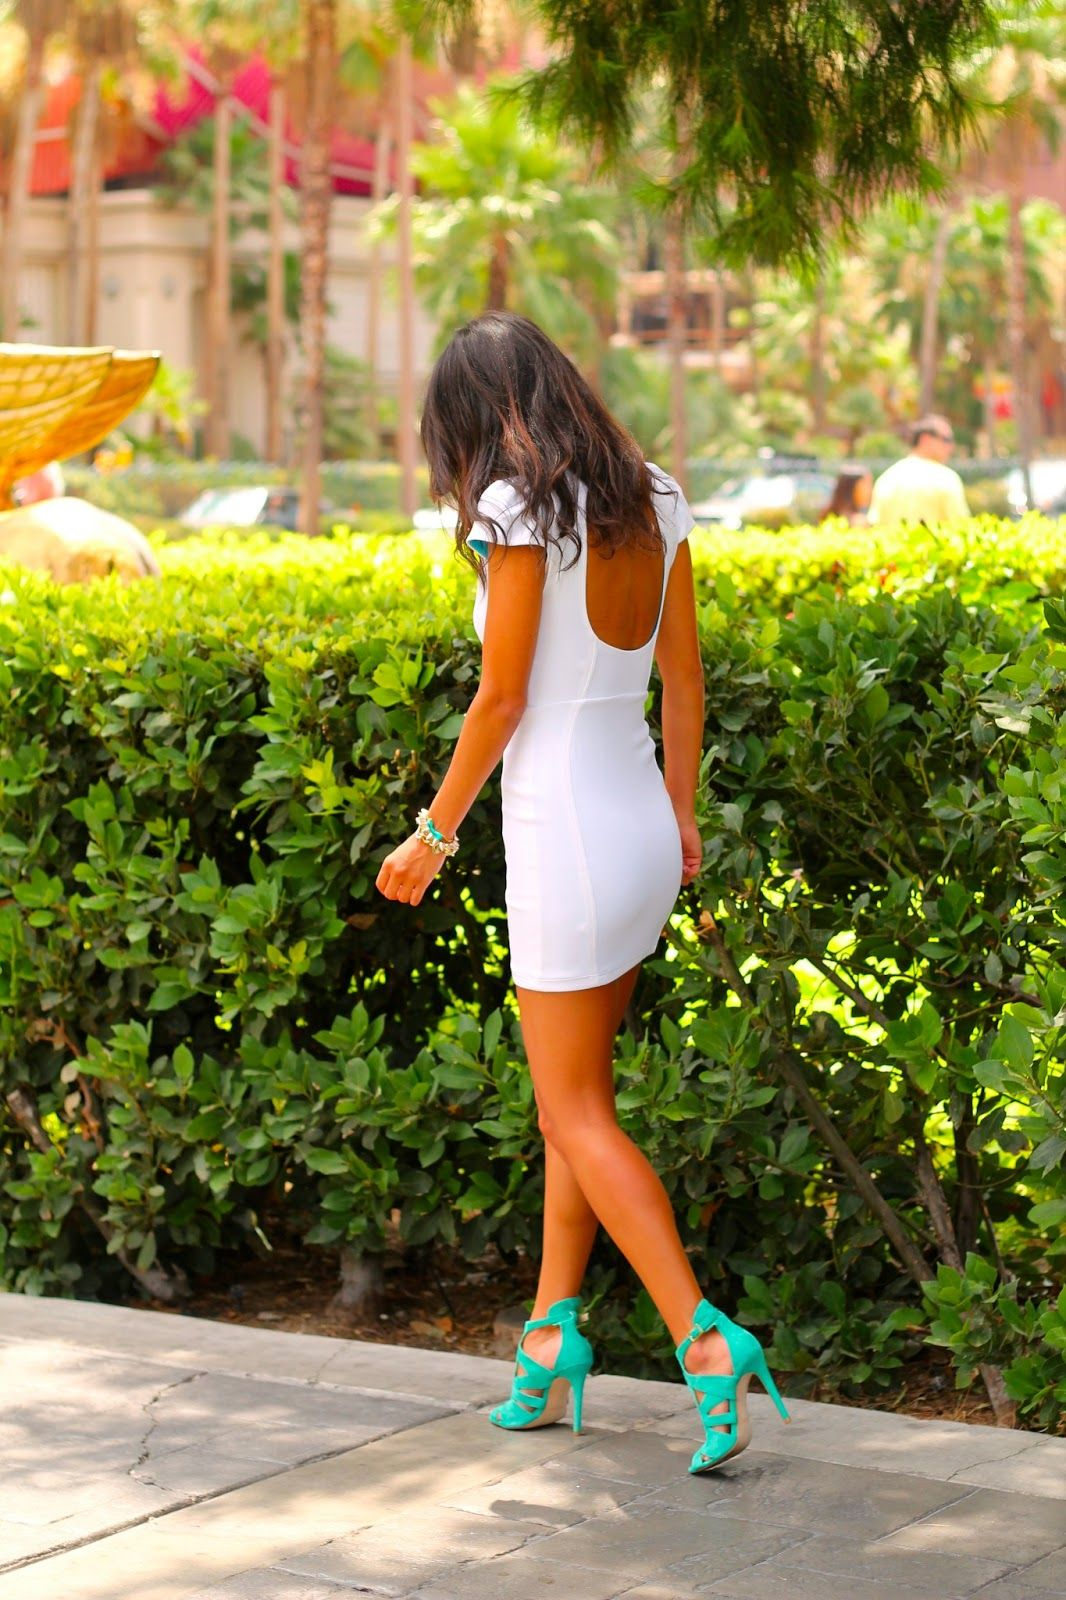 Life, Love and the Pursuit of Shoes: Shop My Look